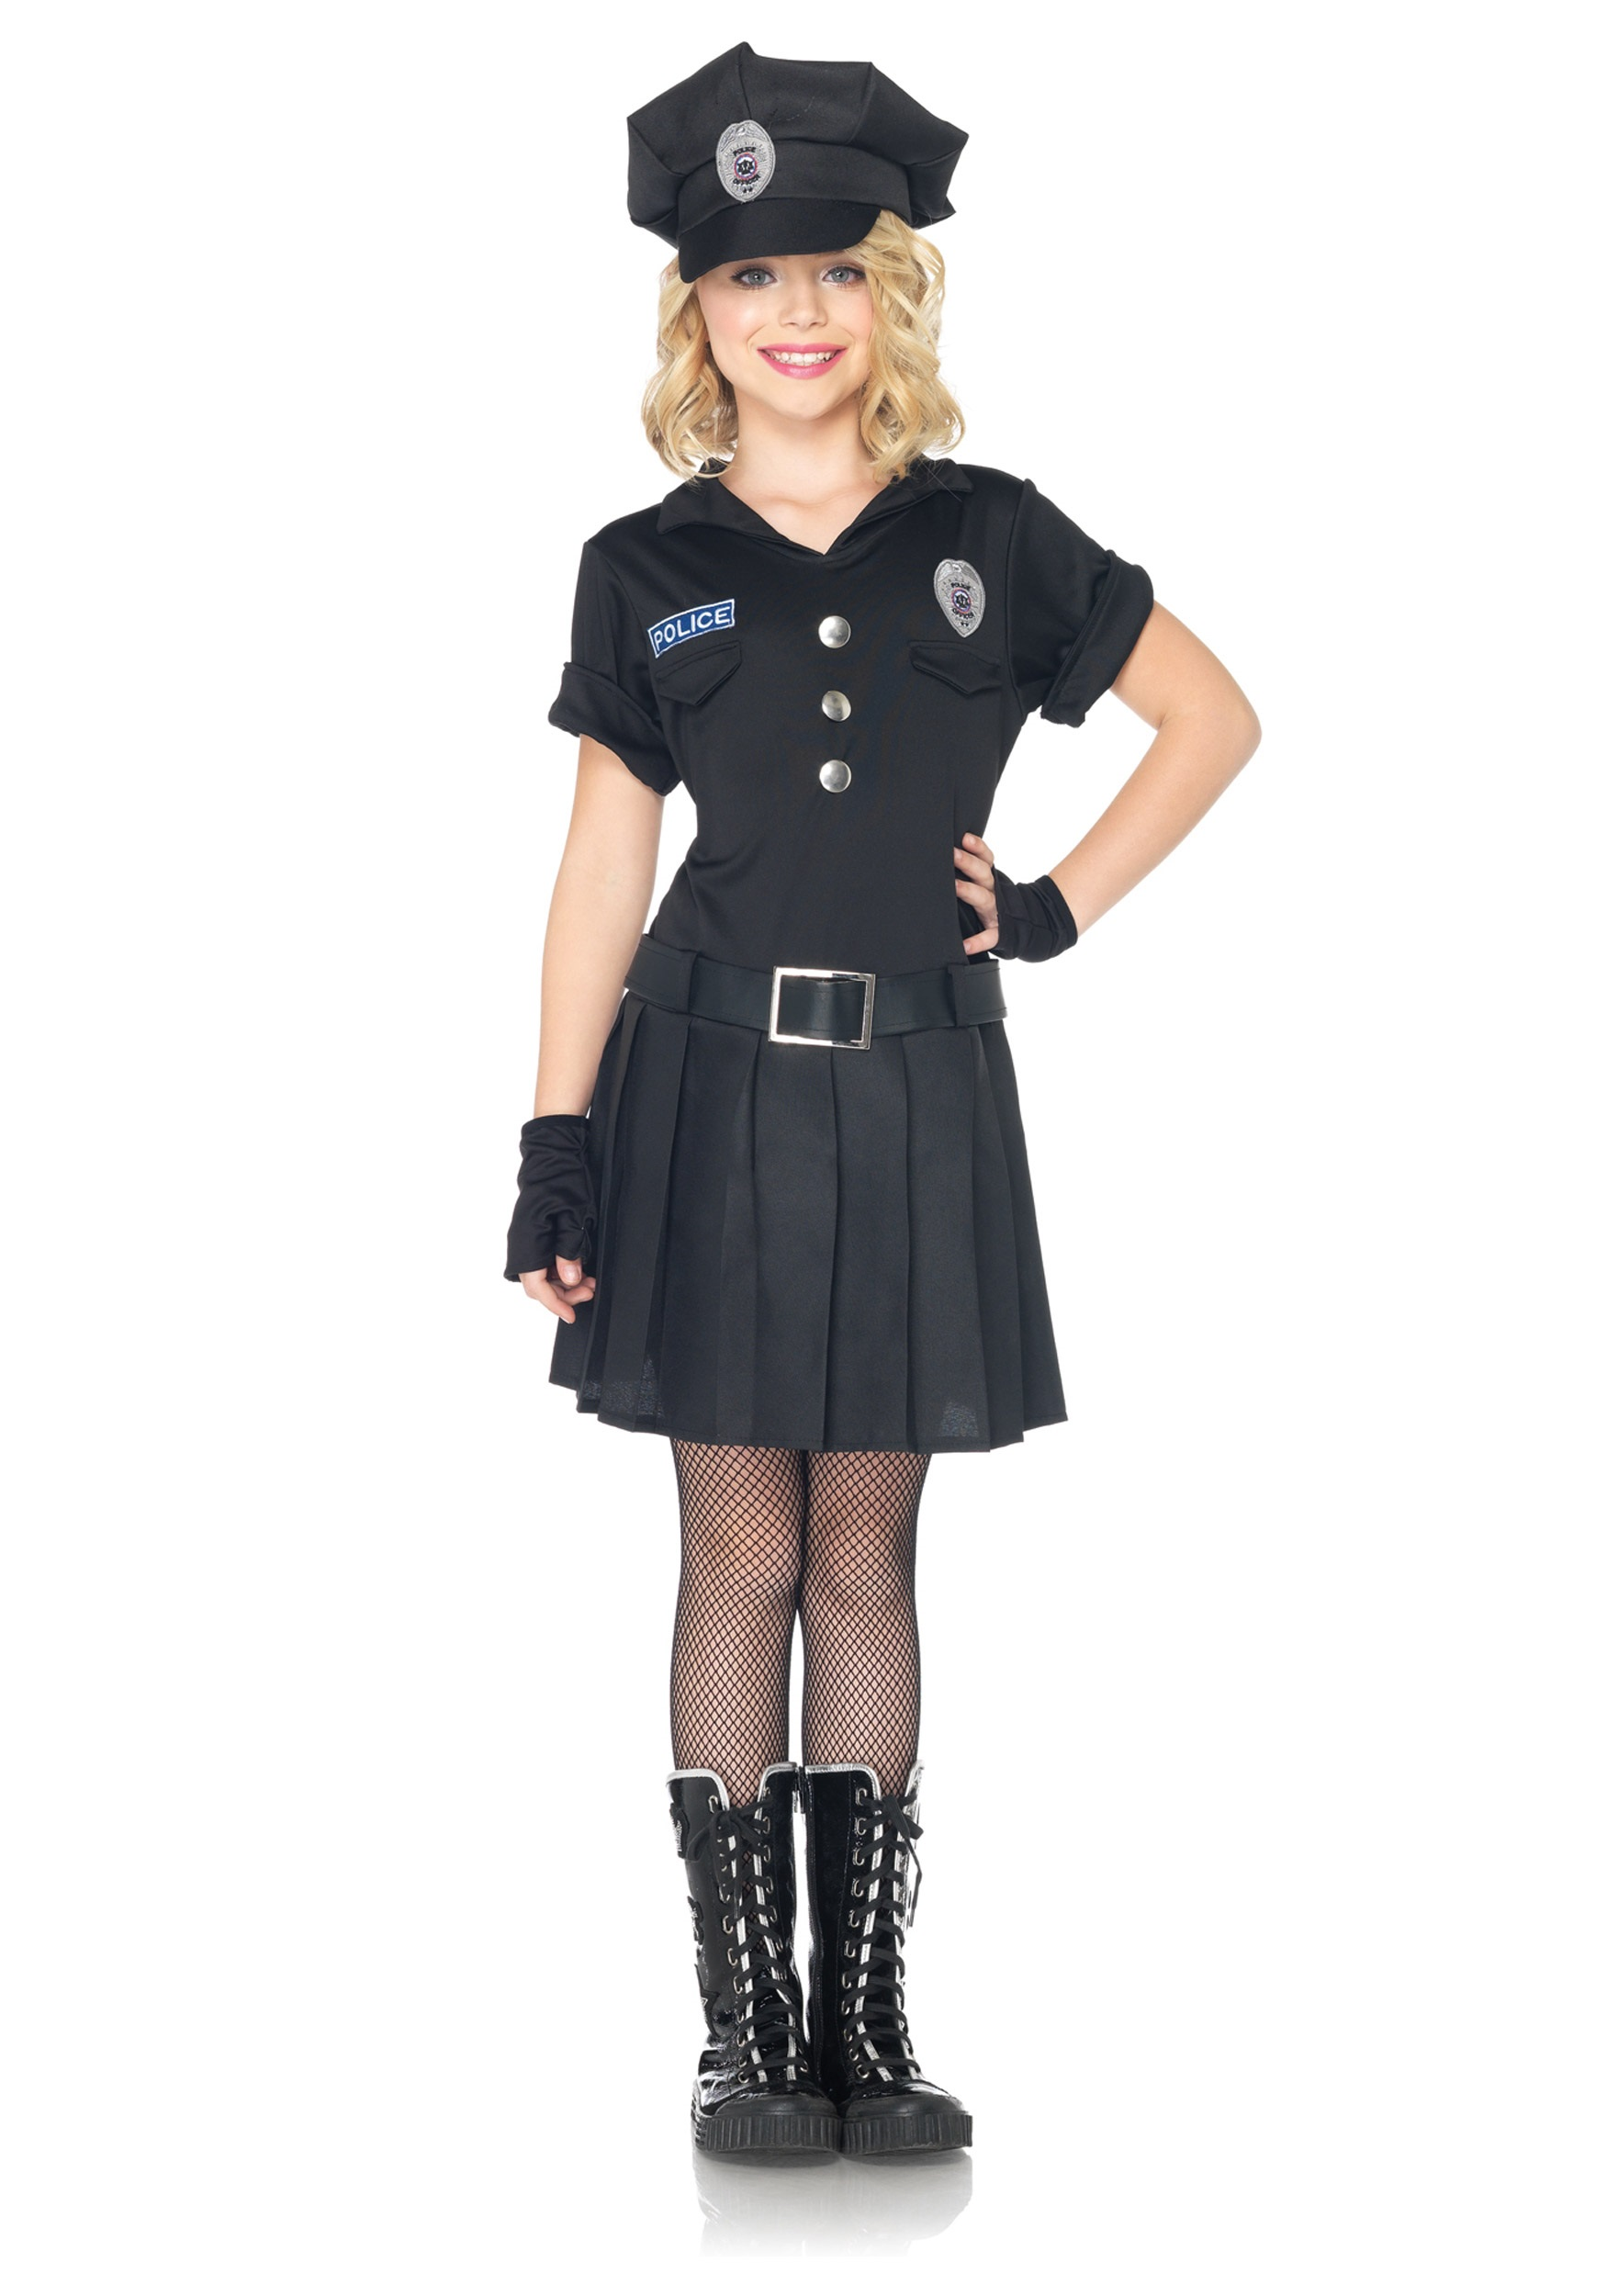 INOpets.com Anything for Pets Parents & Their Pets Girls Playtime Police Costume